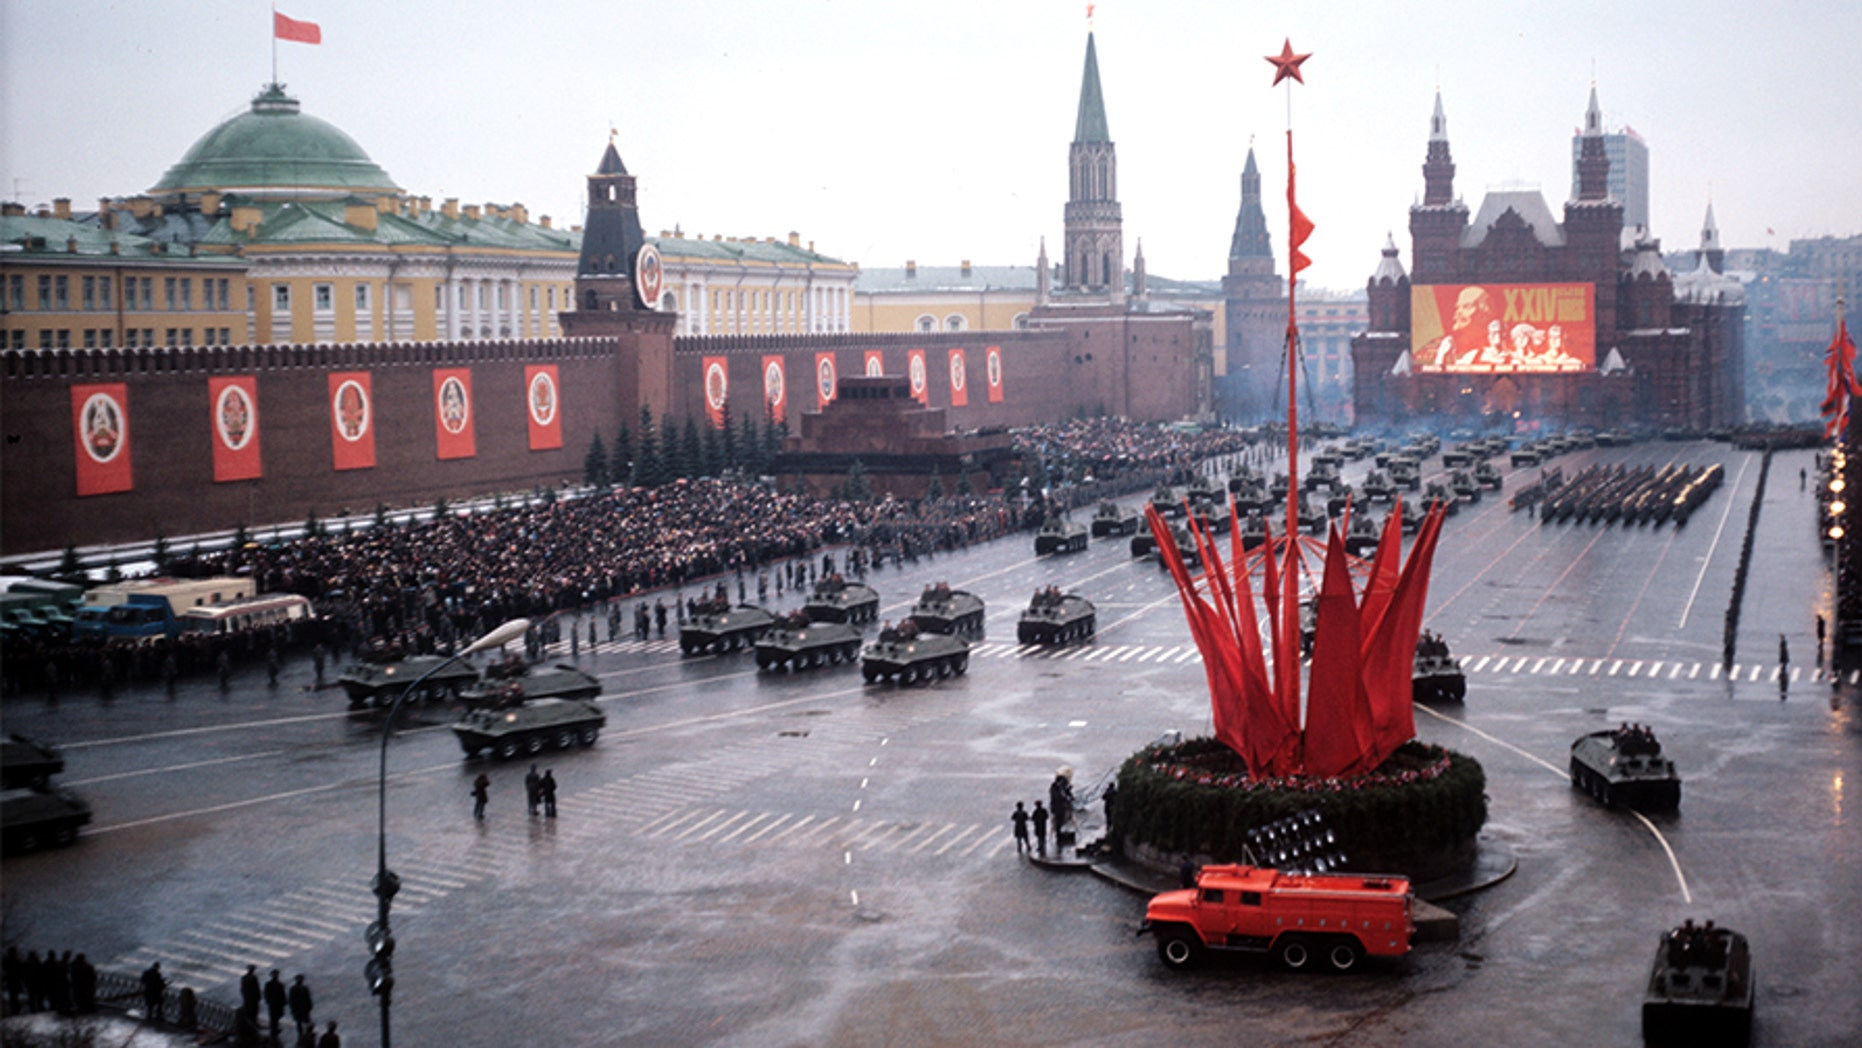 Nov. 7, 1973: A military parade on Red Square held in celebration of the 56th anniversary of Russia's 1917 socialist revolution.